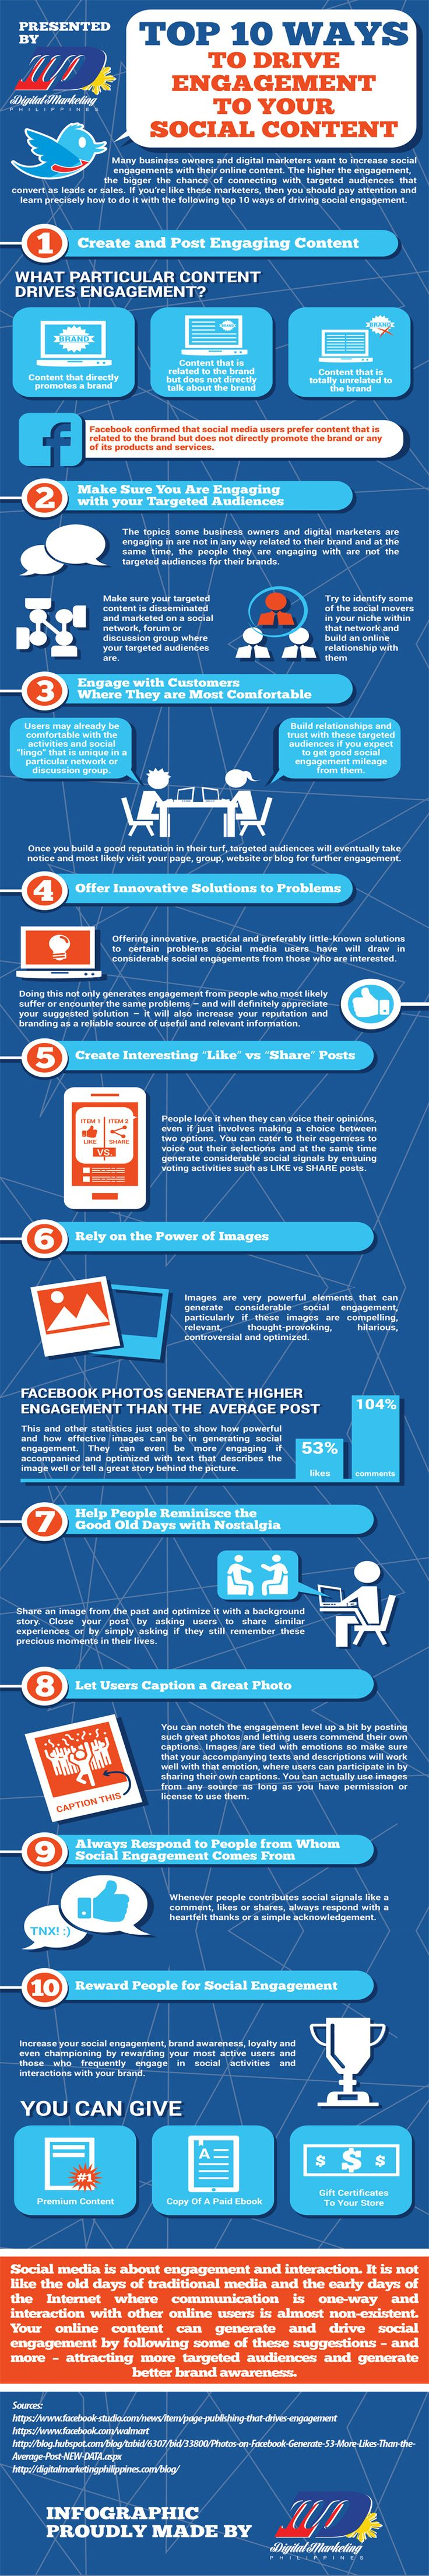 Top 10 Ways to Drive Engagement to Your #SocialContent #infographic http://wildangelgroup.com